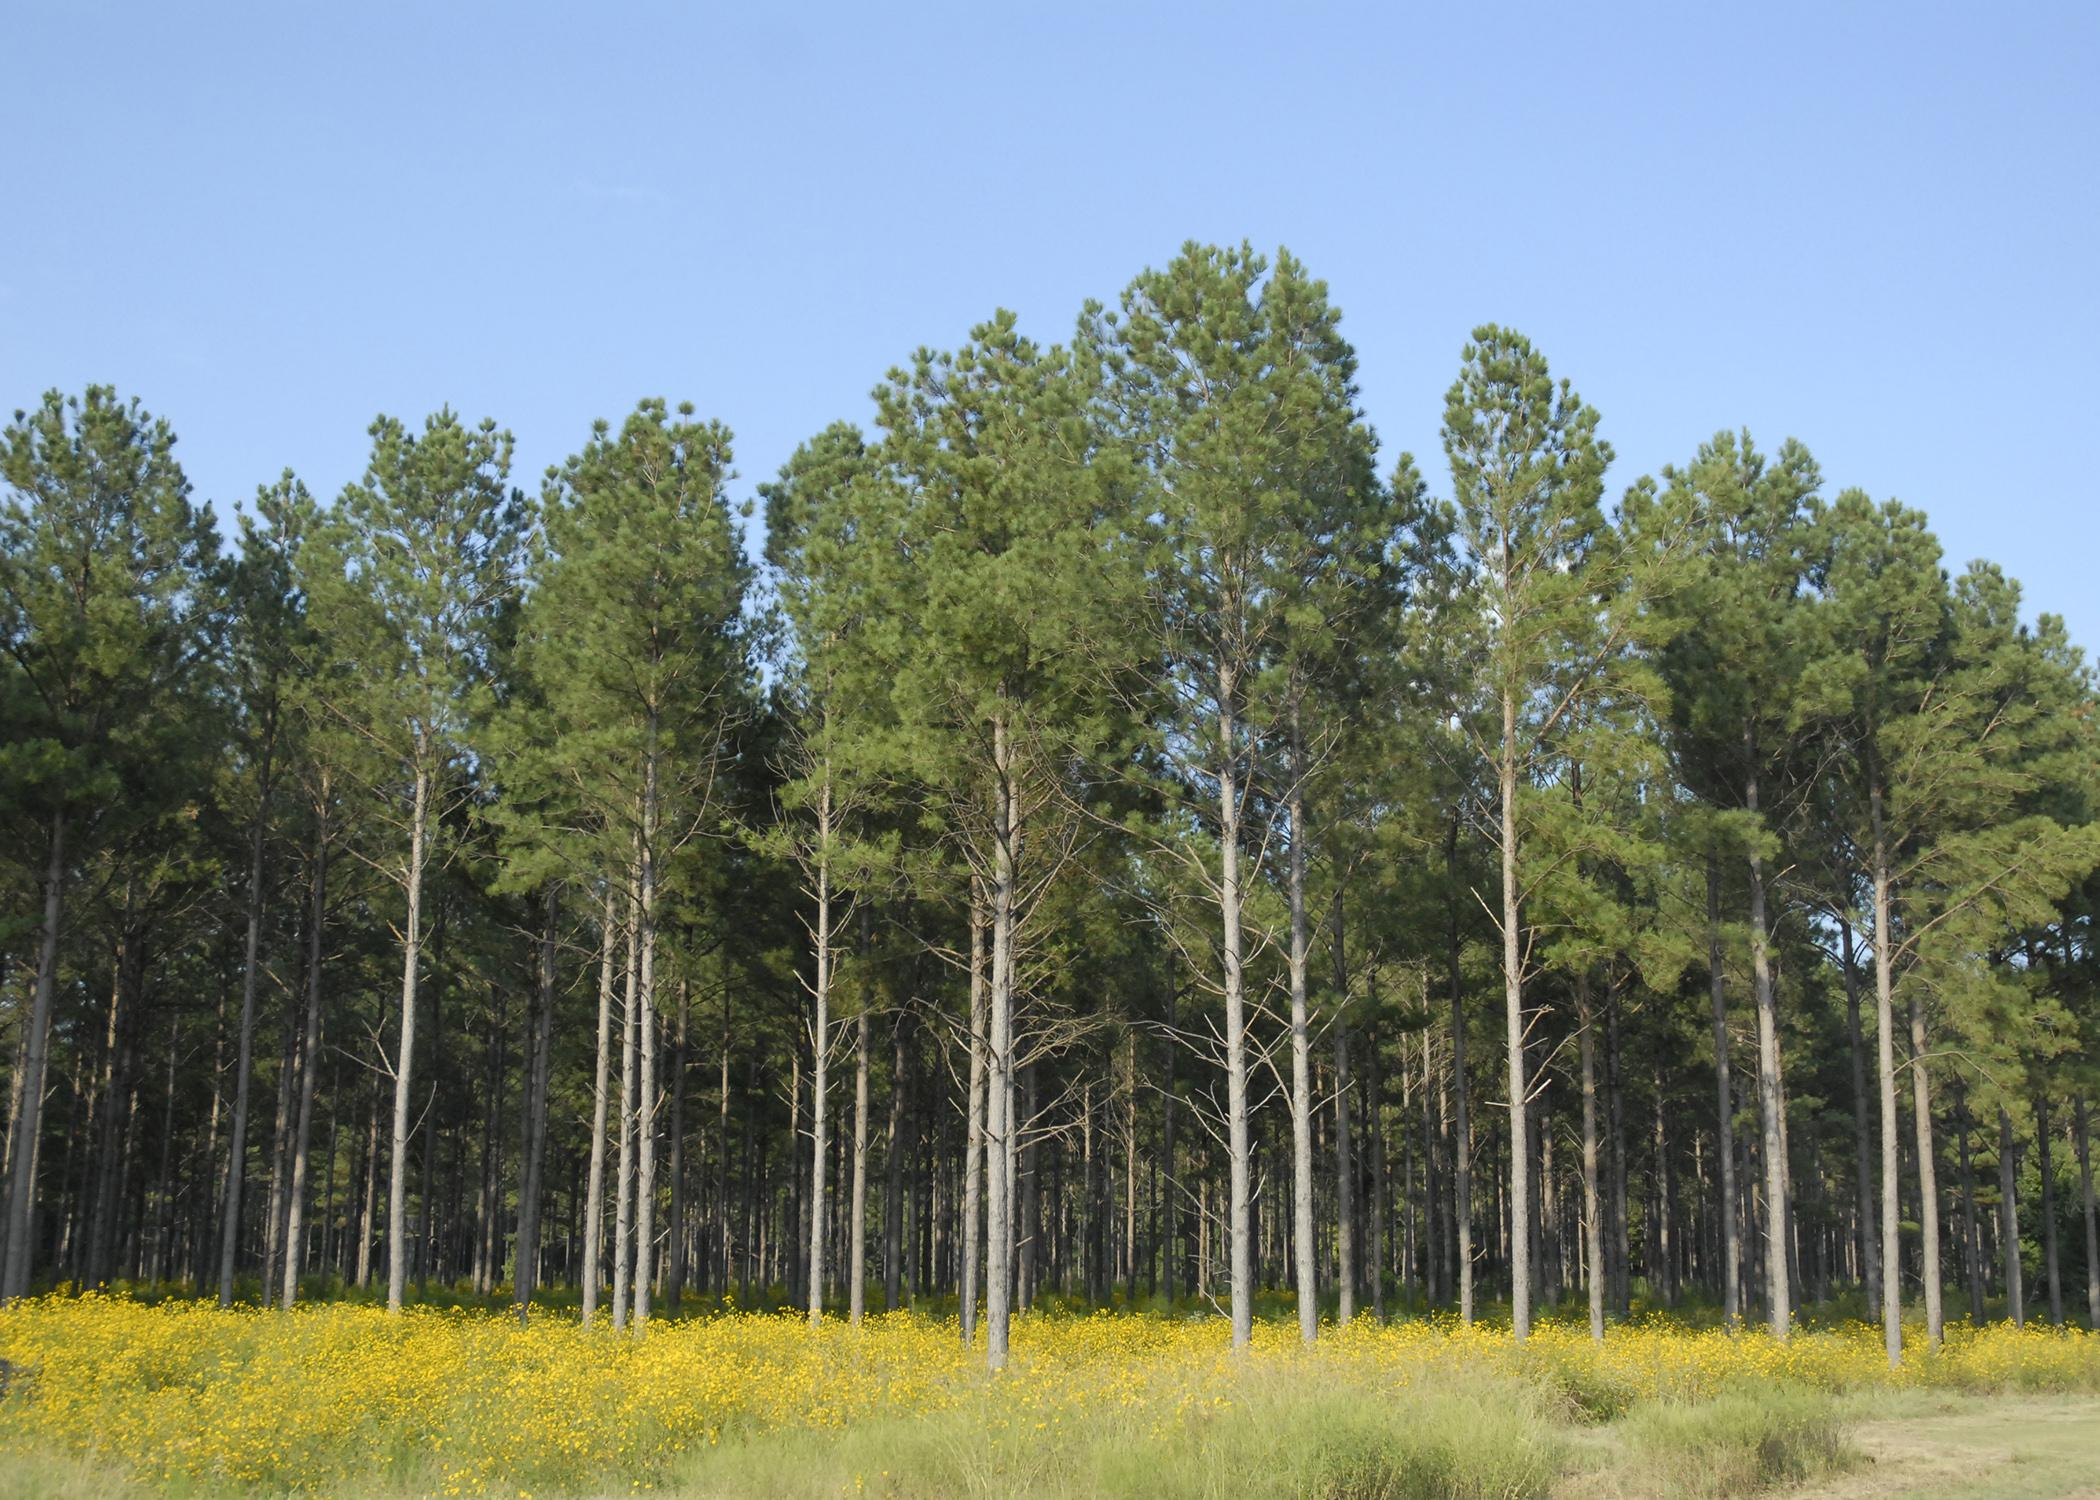 Landowners interested in both timber investments and wildlife habitat must understand the trade-offs involved in managing property for dual purposes. (File photo/MSU Ag Communications)